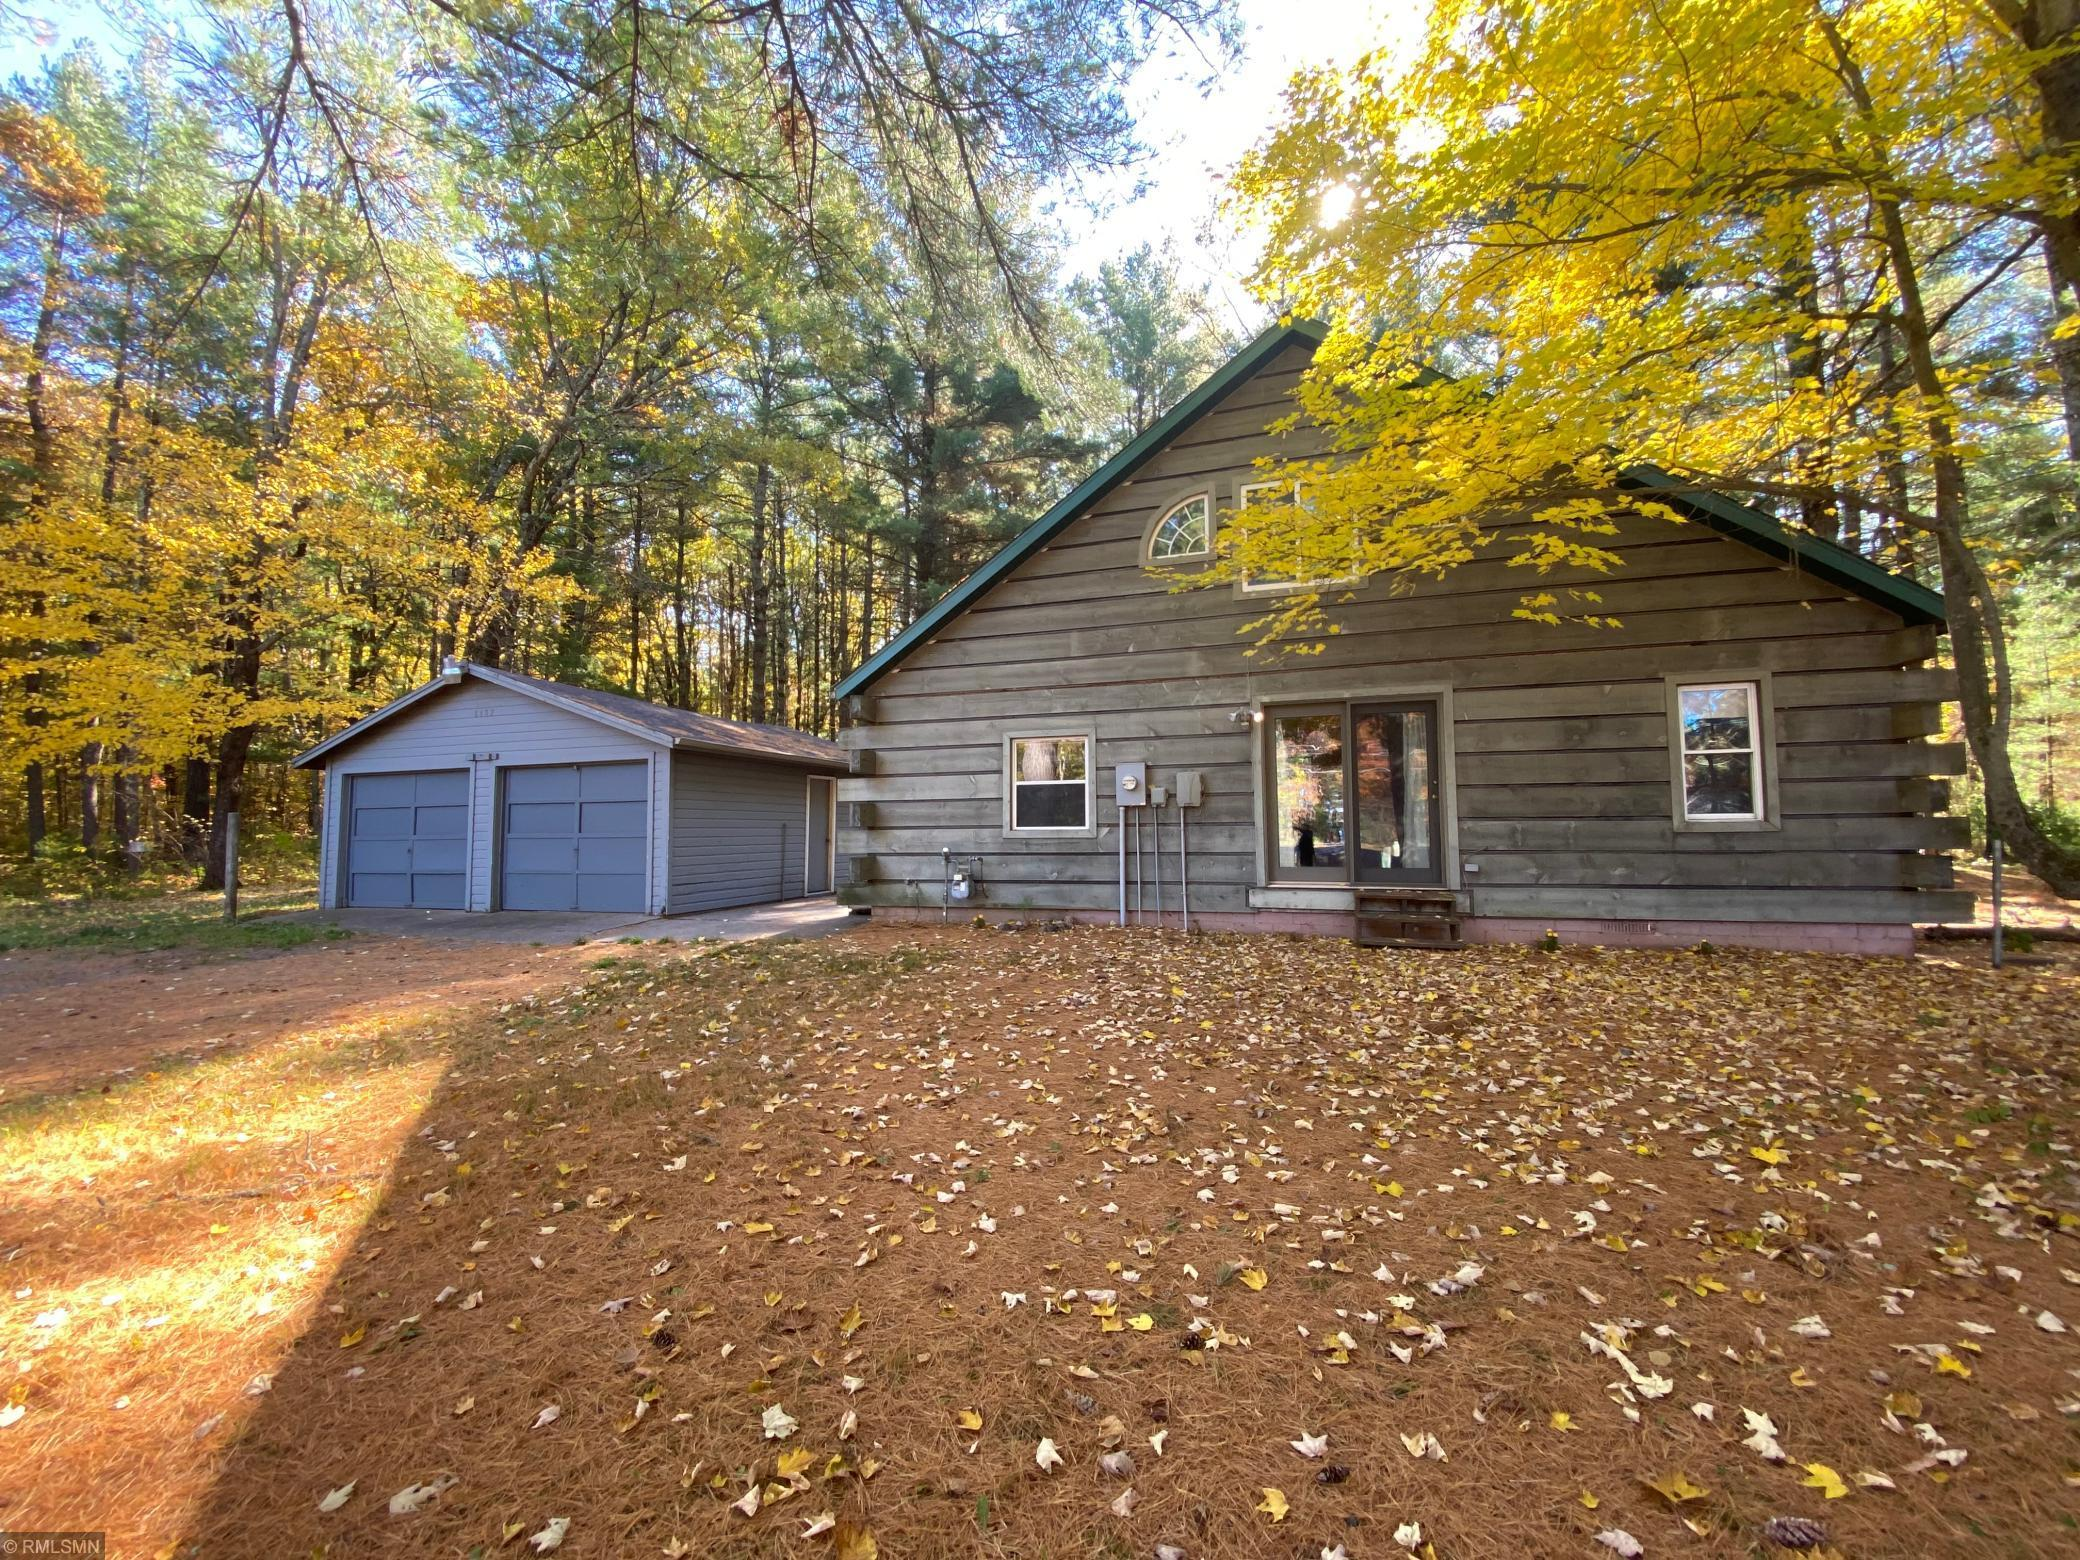 6487 State Road 70 Property Photo - Meenon Twp, WI real estate listing